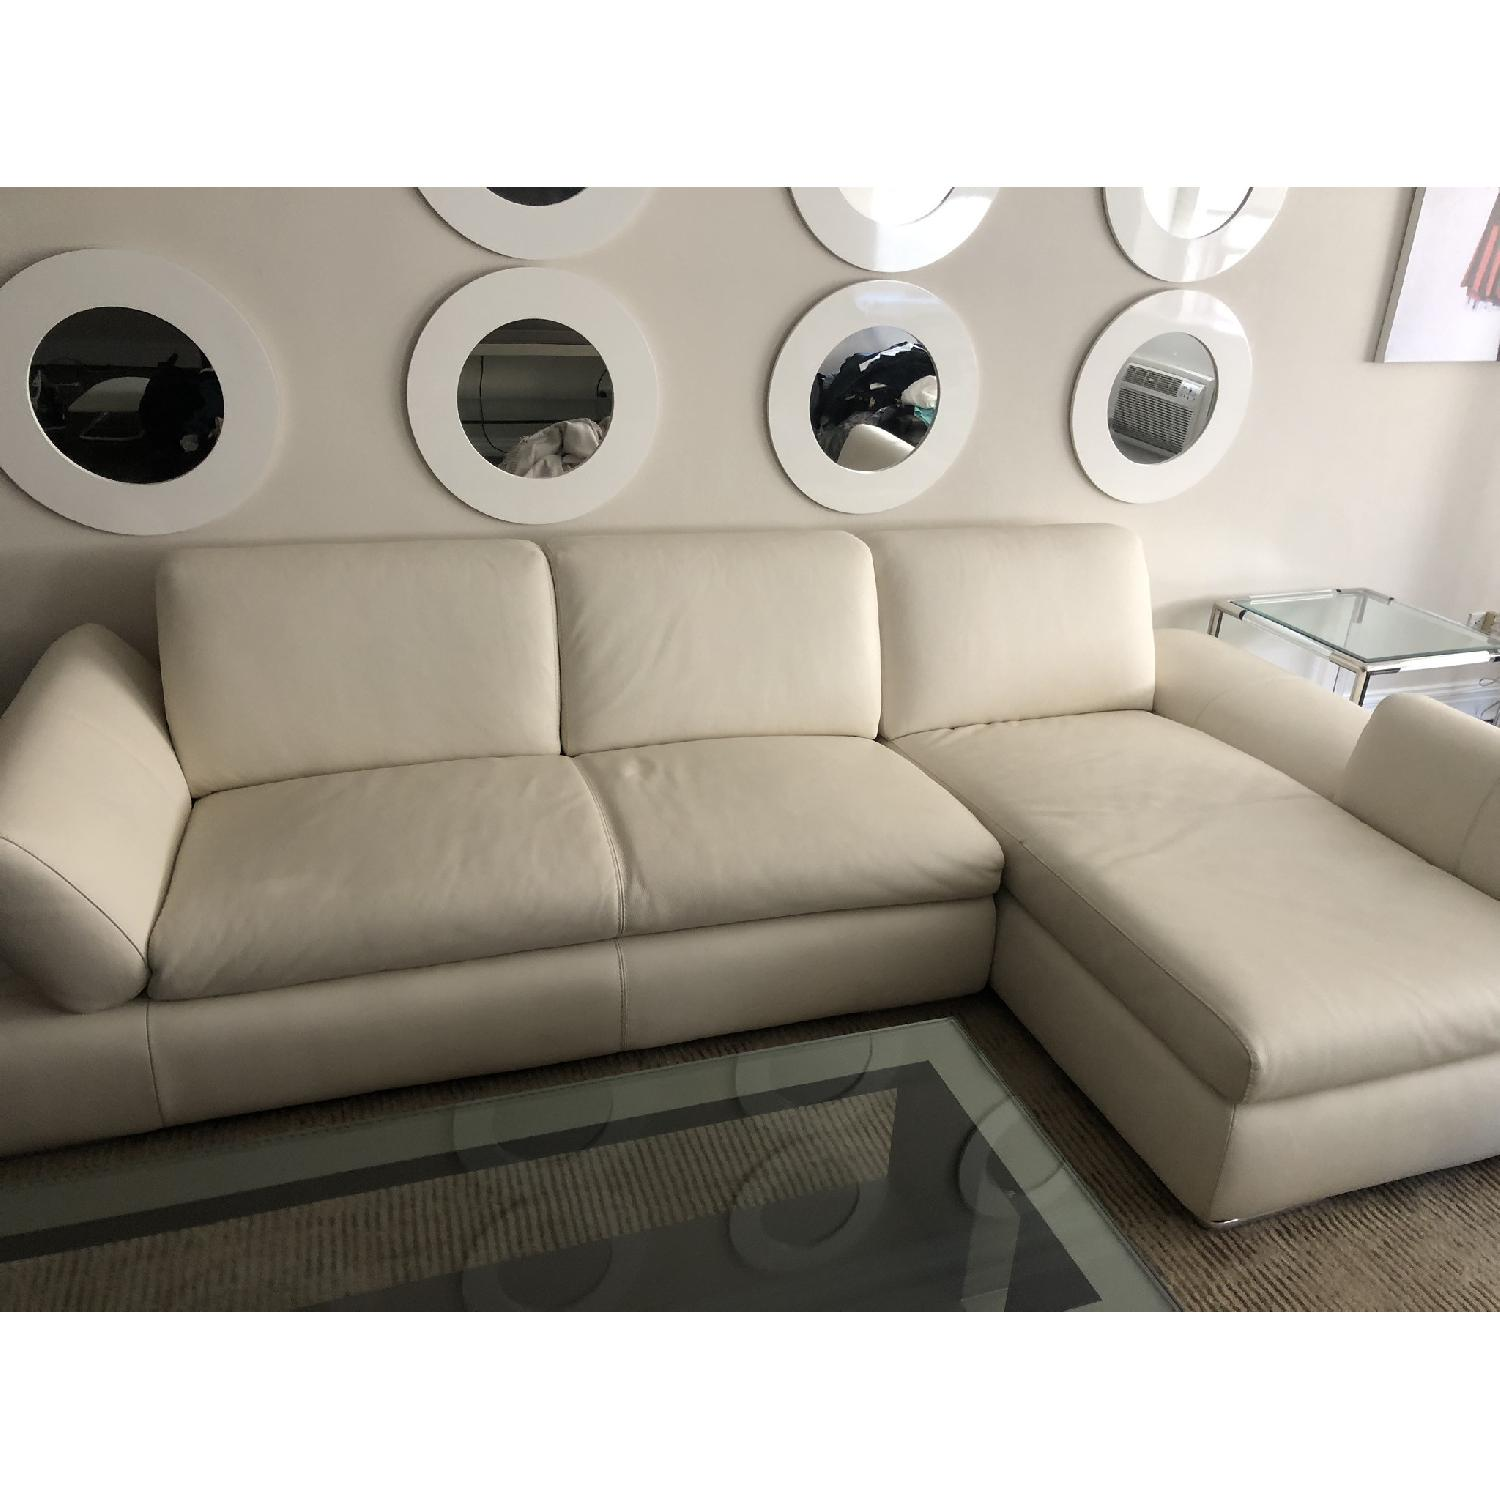 Nicoletti Home White Leather 2-Piece Sectional Sofa - image-1